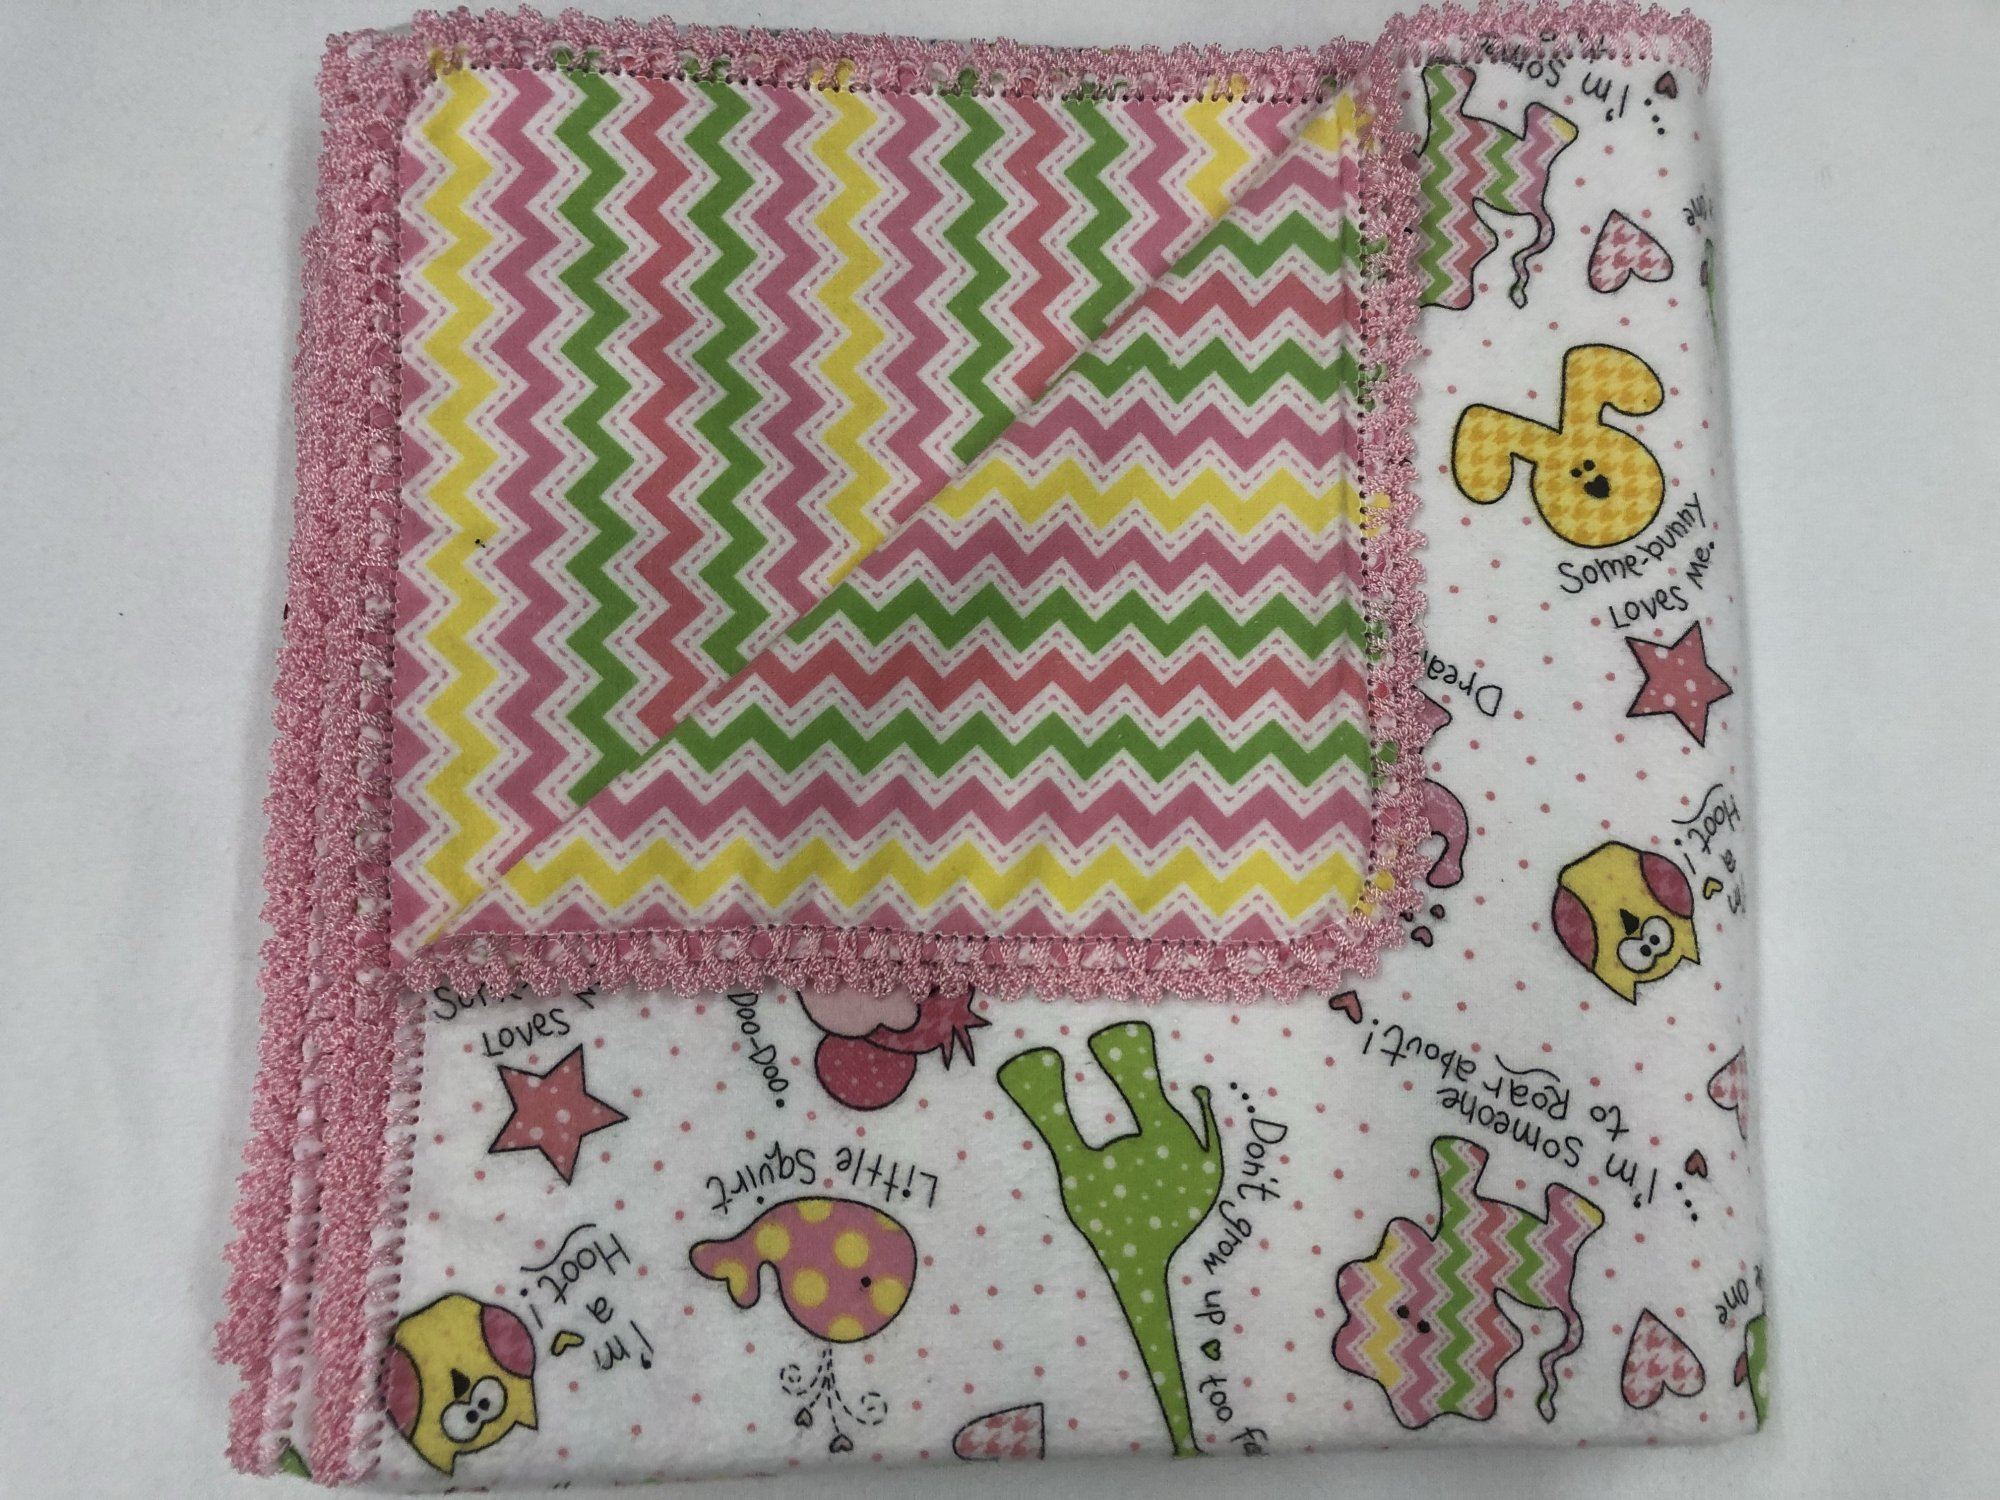 Multi-color animals with words and dots on white background/Pink,yellow, and green chevron crocheted blanket